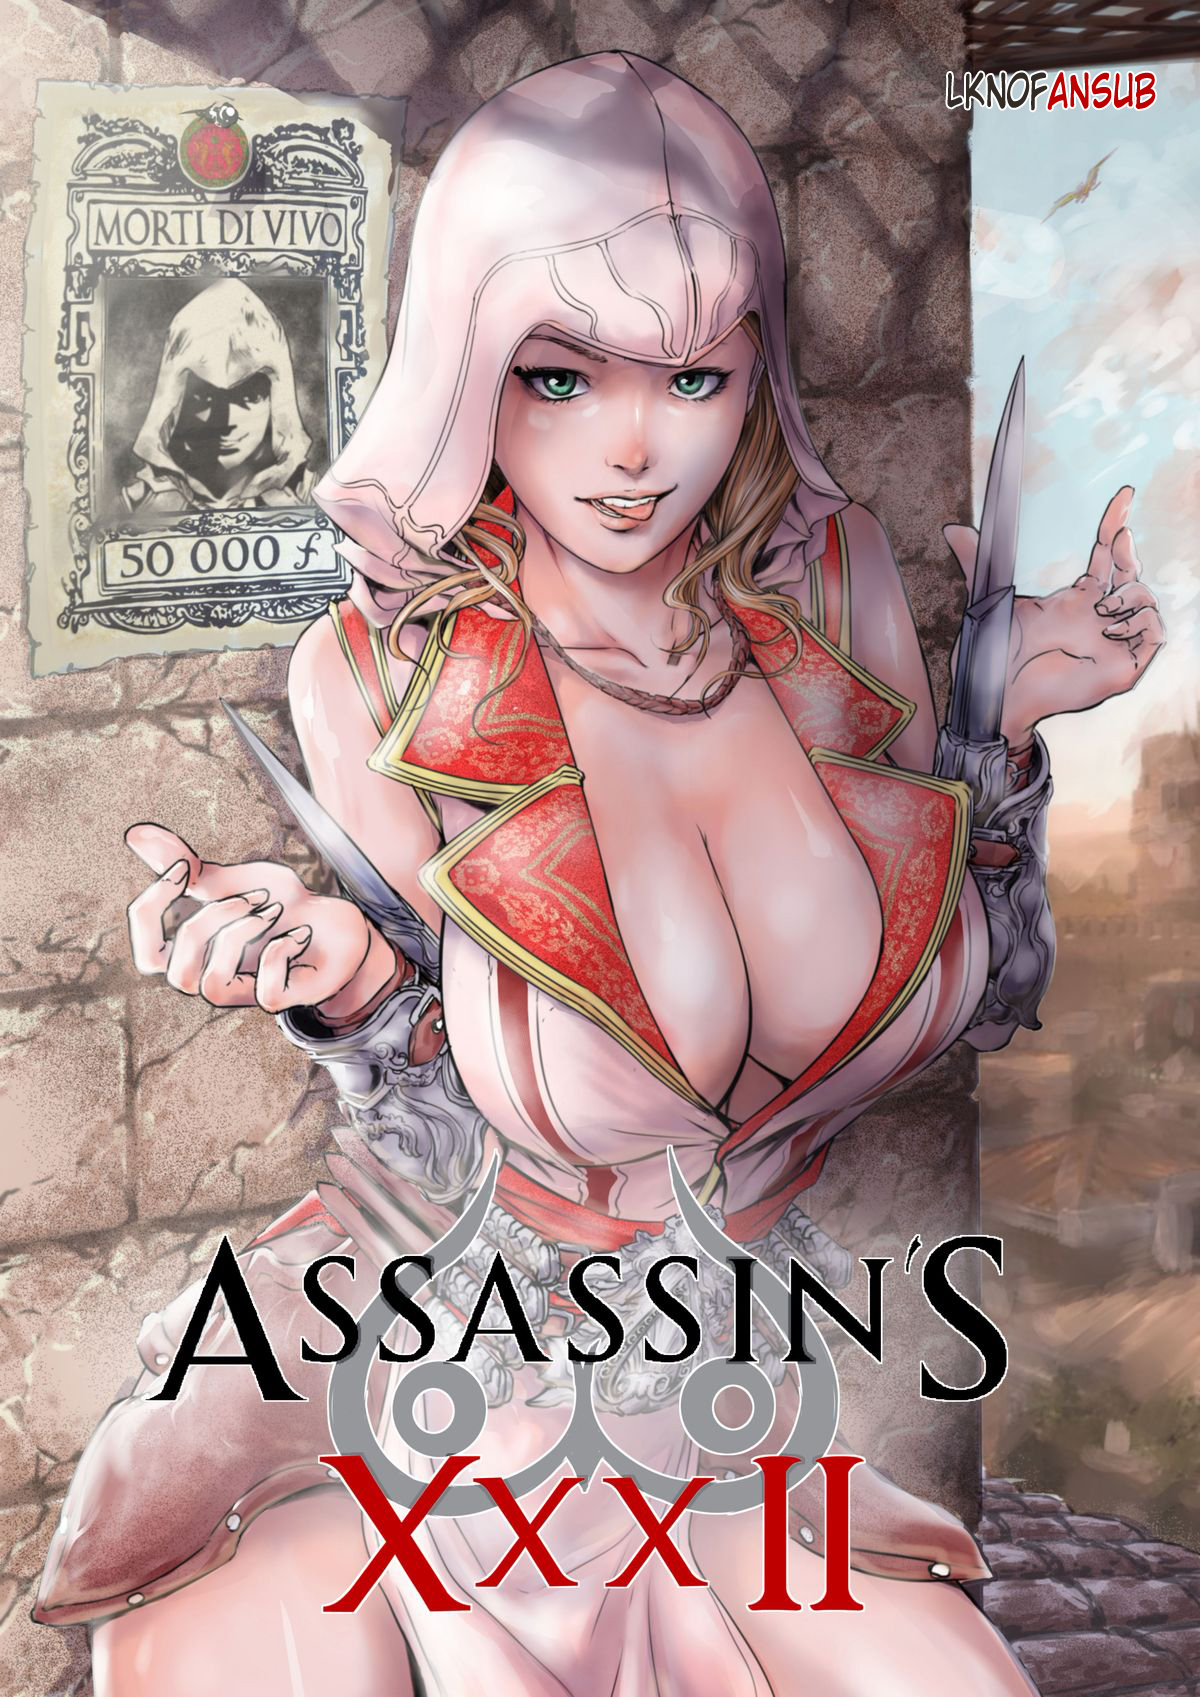 Assassin s creed porn download fucked scene